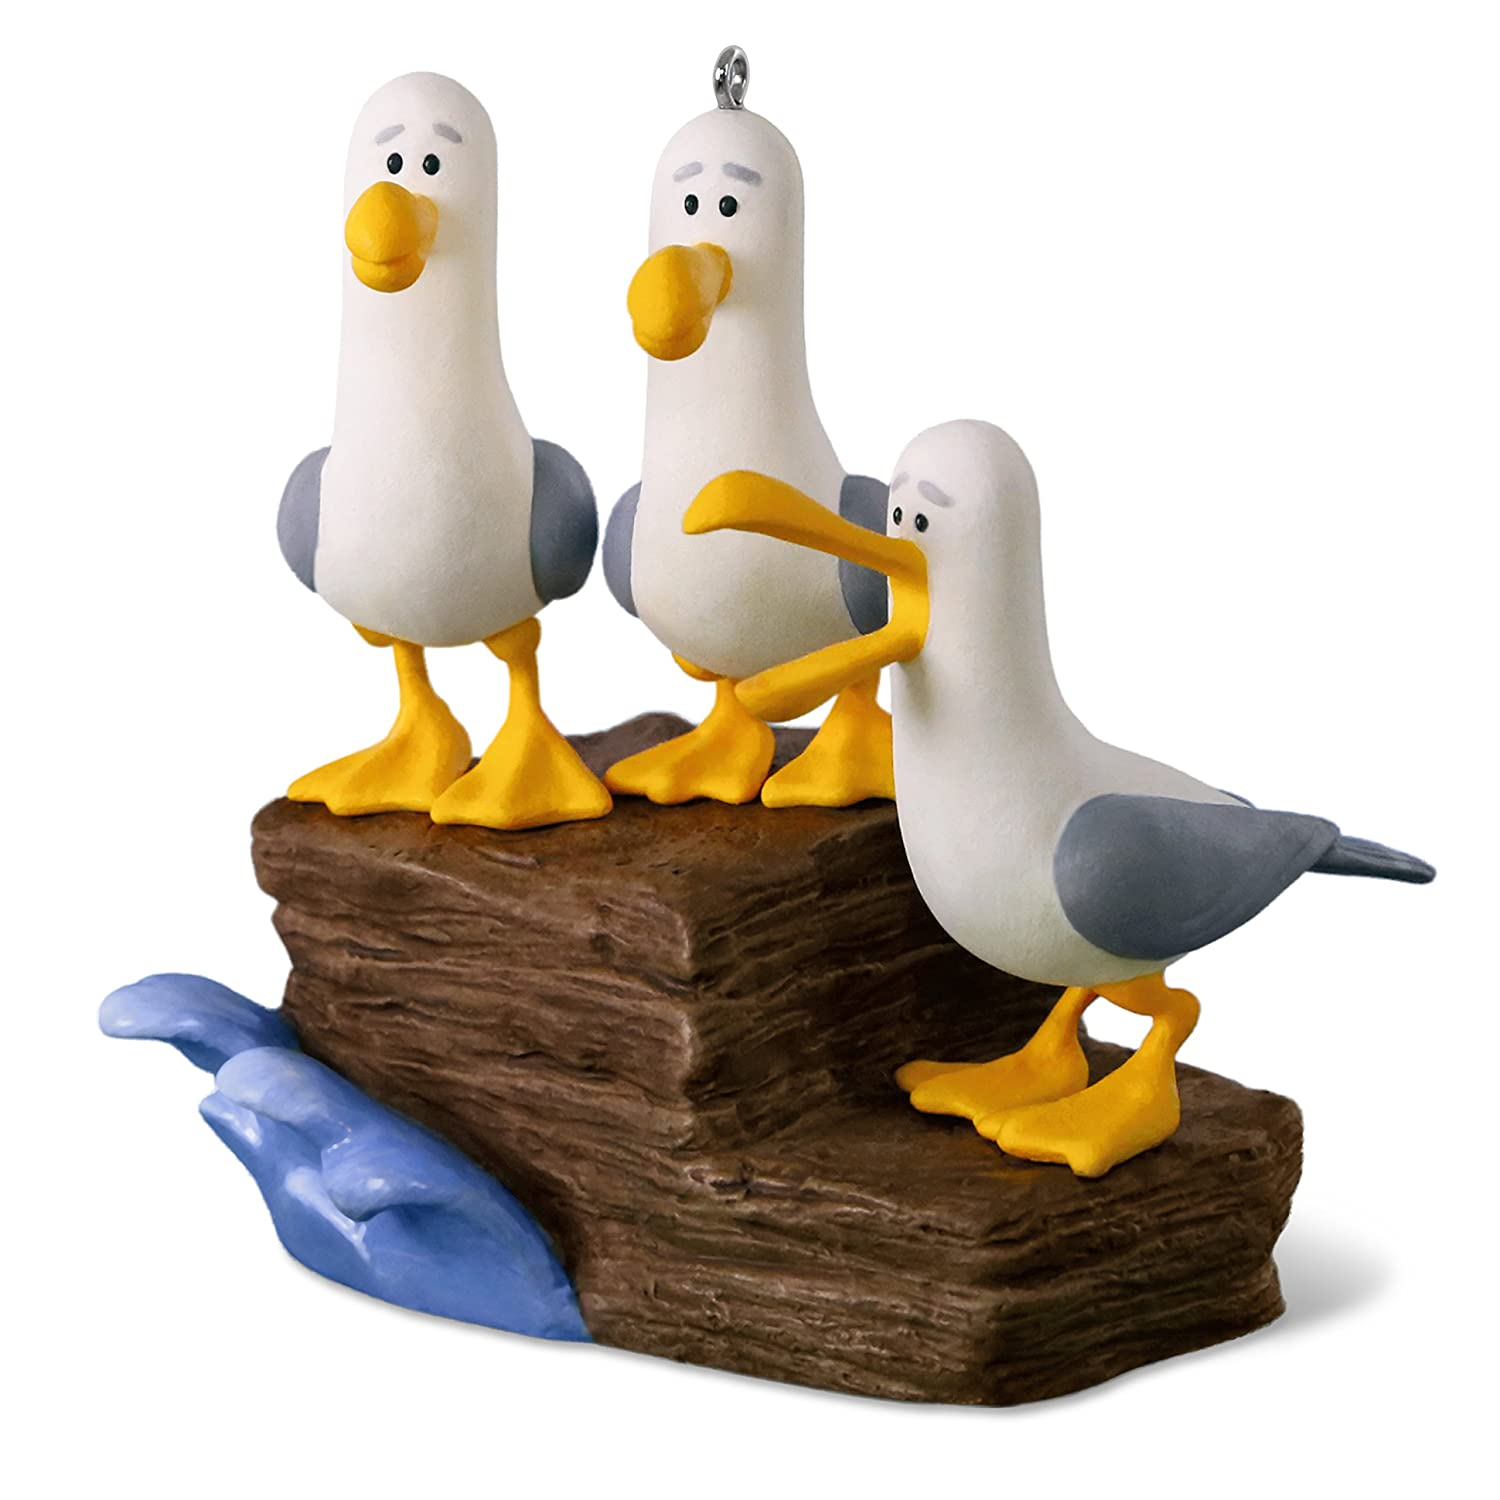 Hallmark Keepsake Christmas Ornament 2018 Year Dated, Disney/Pixar Finding Nemo Mine! Mine! Mine! Seagulls with Sound Hallmark Cards